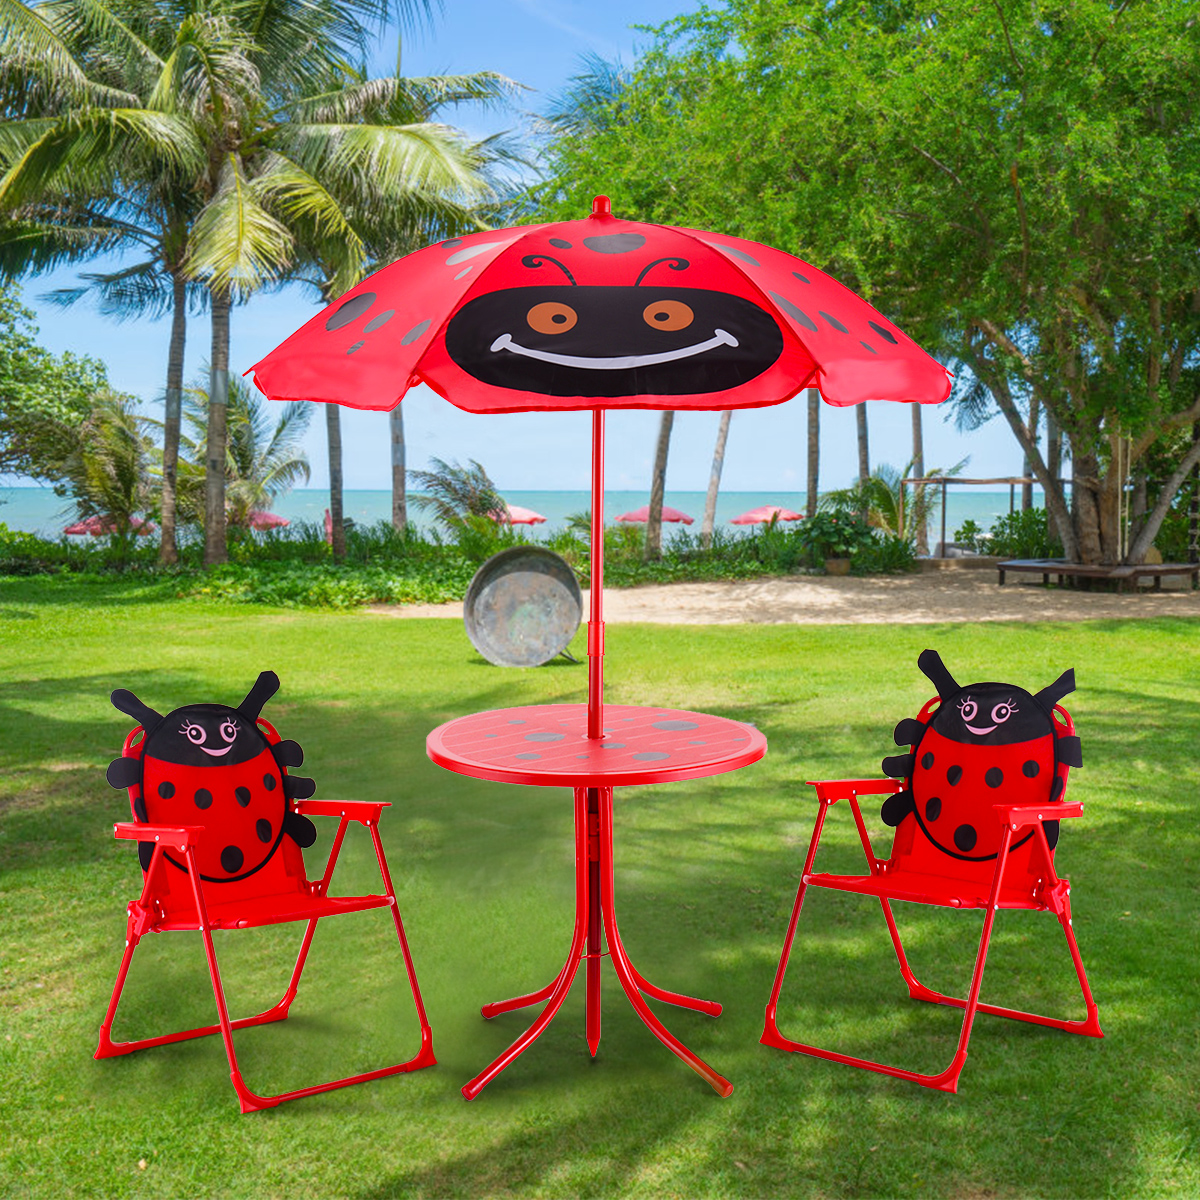 Kids Patio Set Table u0026 2 Folding Chairs w/ Umbrella Beetle Outdoor Garden Yard ... & Kids Patio Set Table u0026 2 Folding Chairs w/ Umbrella Beetle Outdoor ...